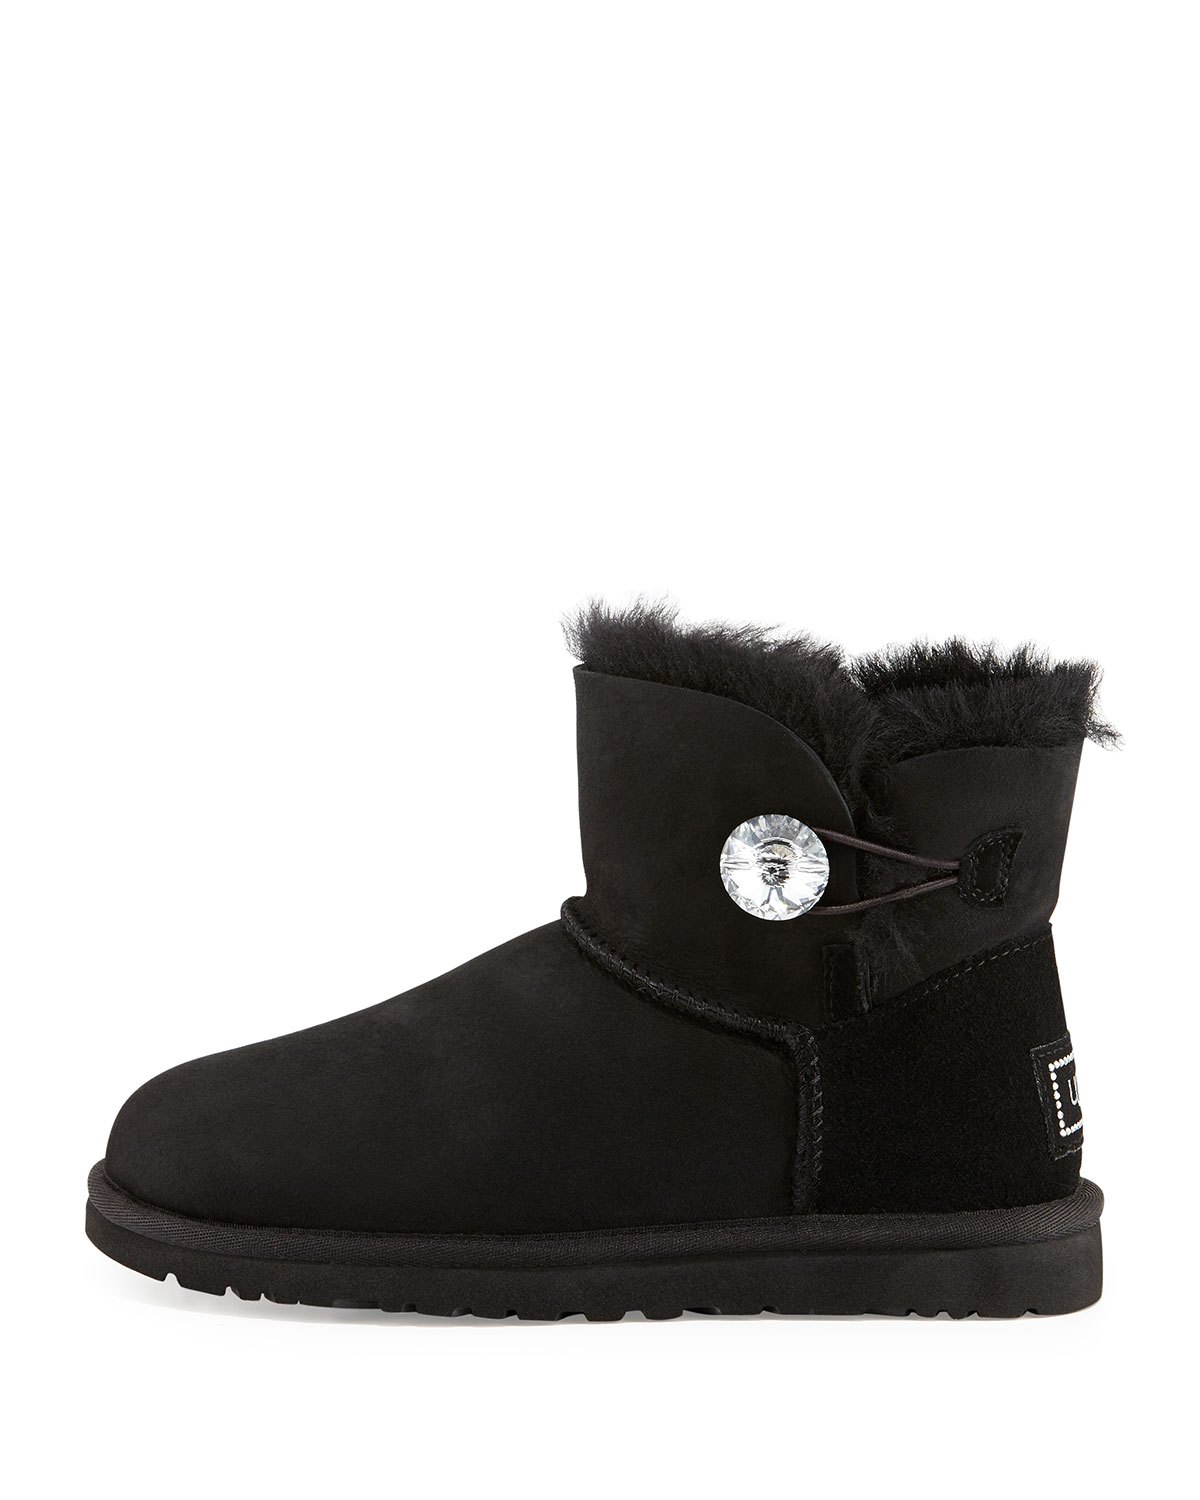 3ed7e3b0021 Ugg Boots With Crystal Button